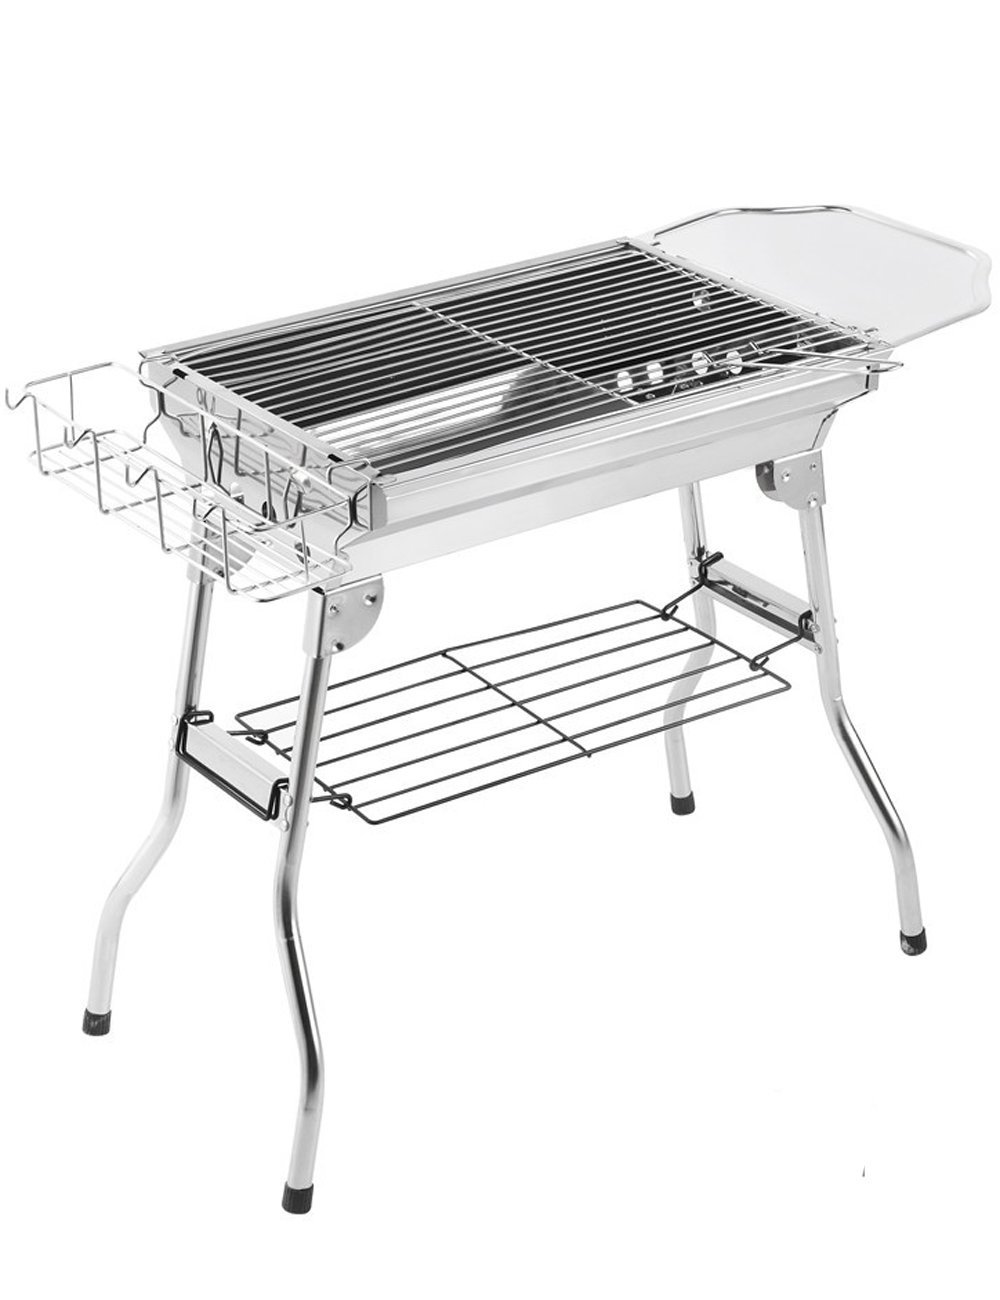 Menschwear 19'' Stainless Steel Foldable Charcoal Grills Outdoor Portable Thickened BBQ Camping Grills 50cm